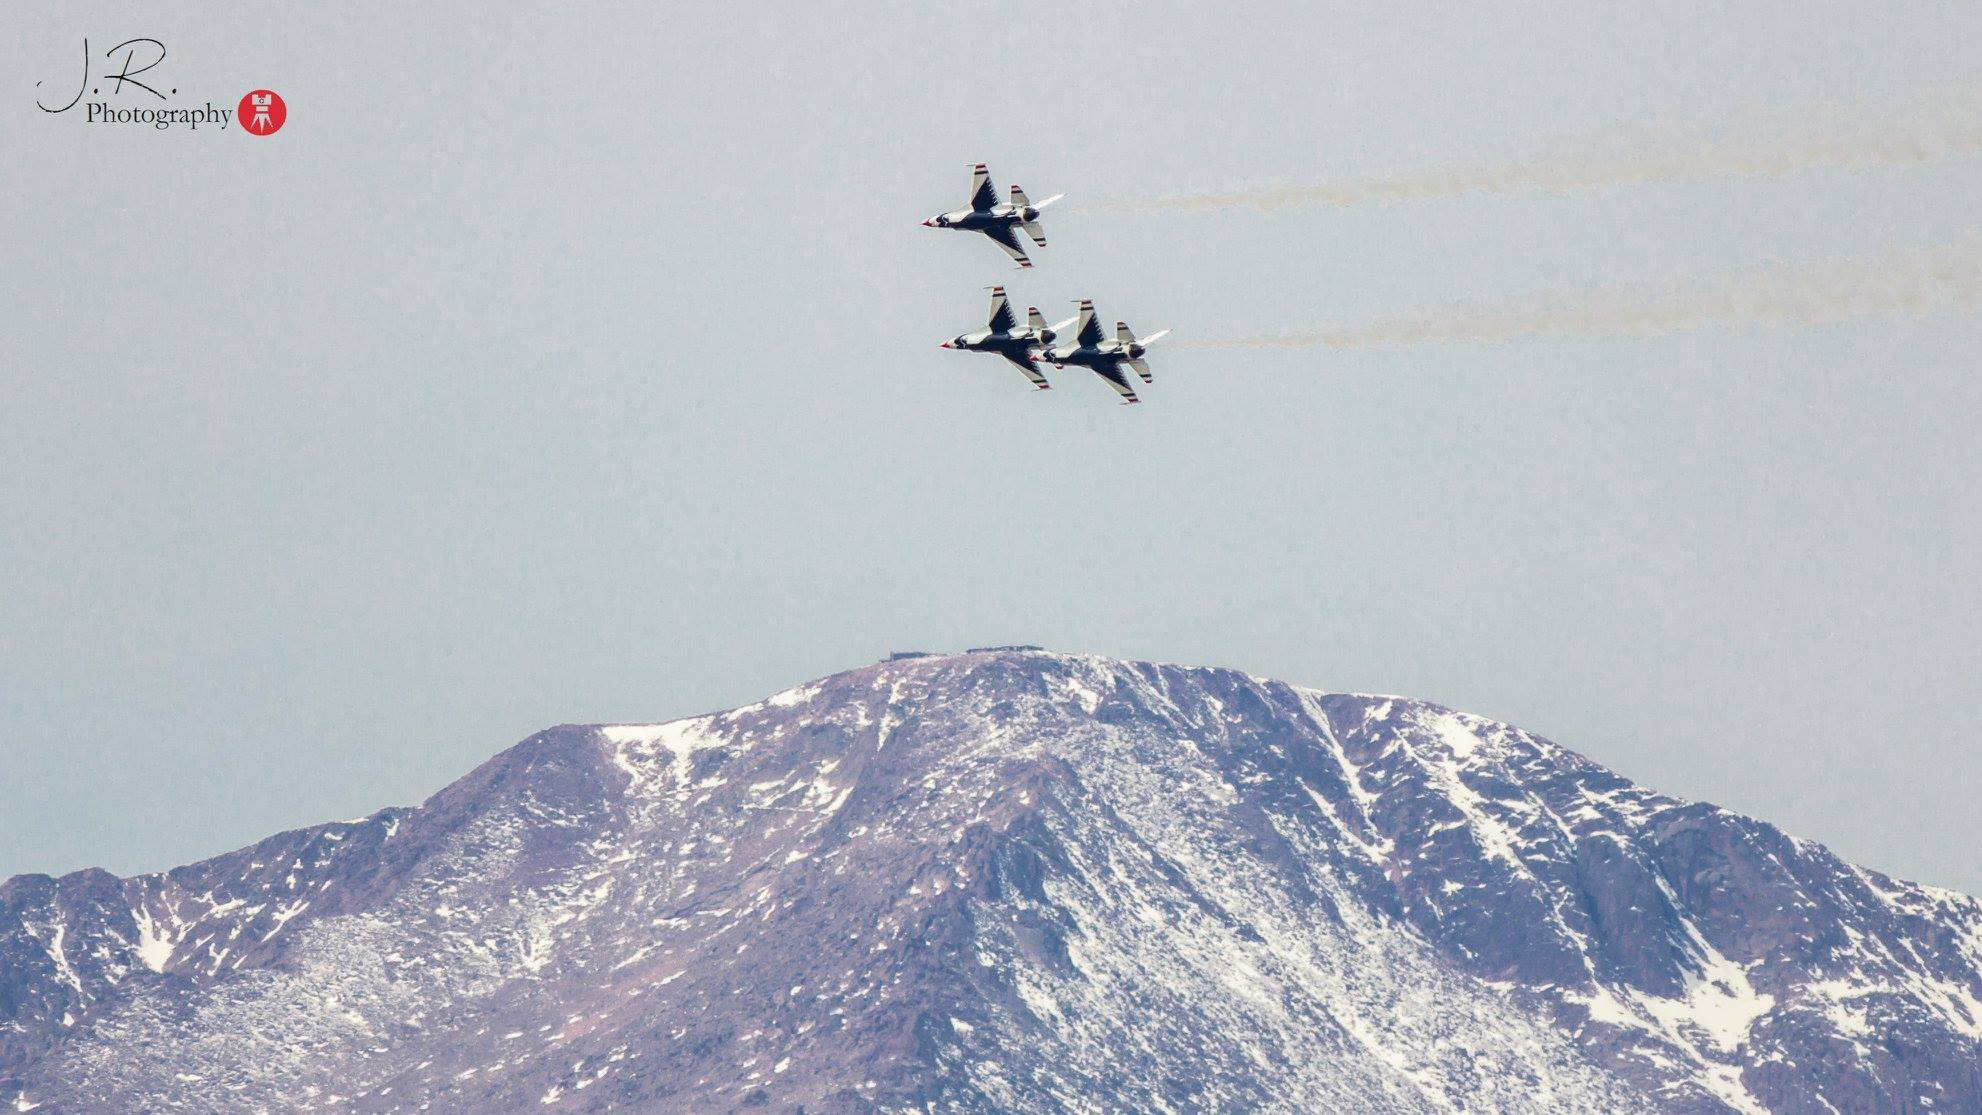 Thunderbirds by J.R. Photography Services